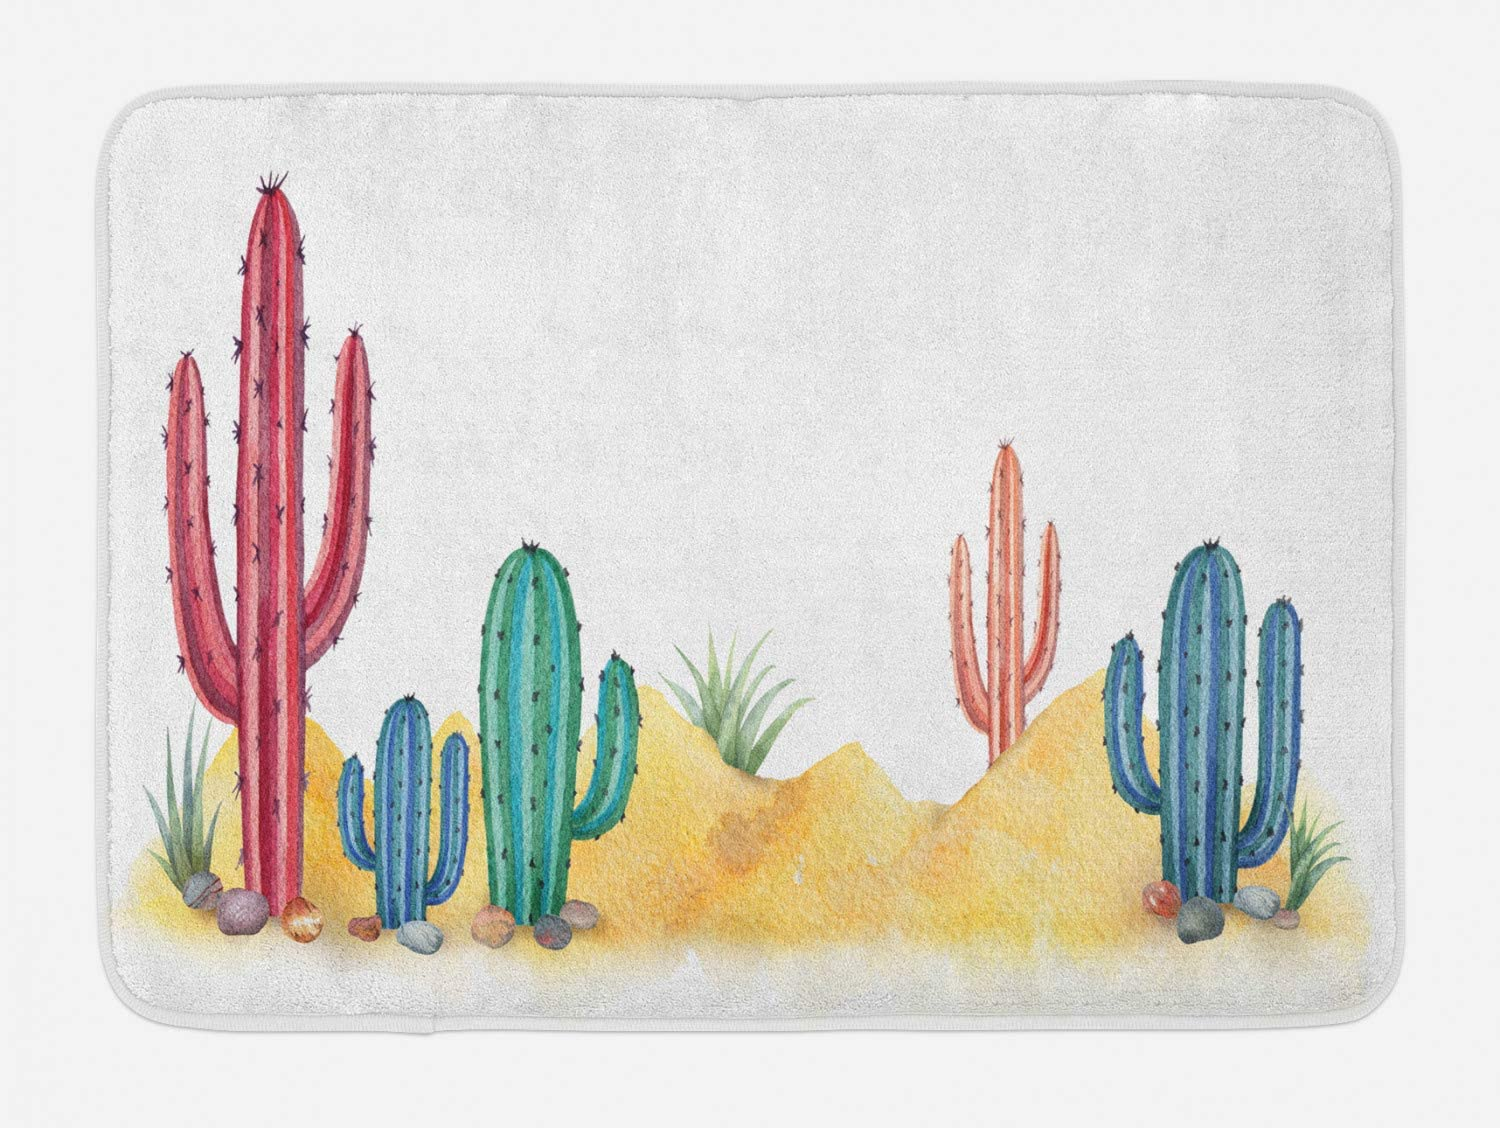 Lunarable Cactus Landscape Bath Mat, Watercolor Style Colorful Painted Cacti and Desert Hills Scenery Graphic, Plush Bathroom Decor Mat with Non Slip Backing, 29.5